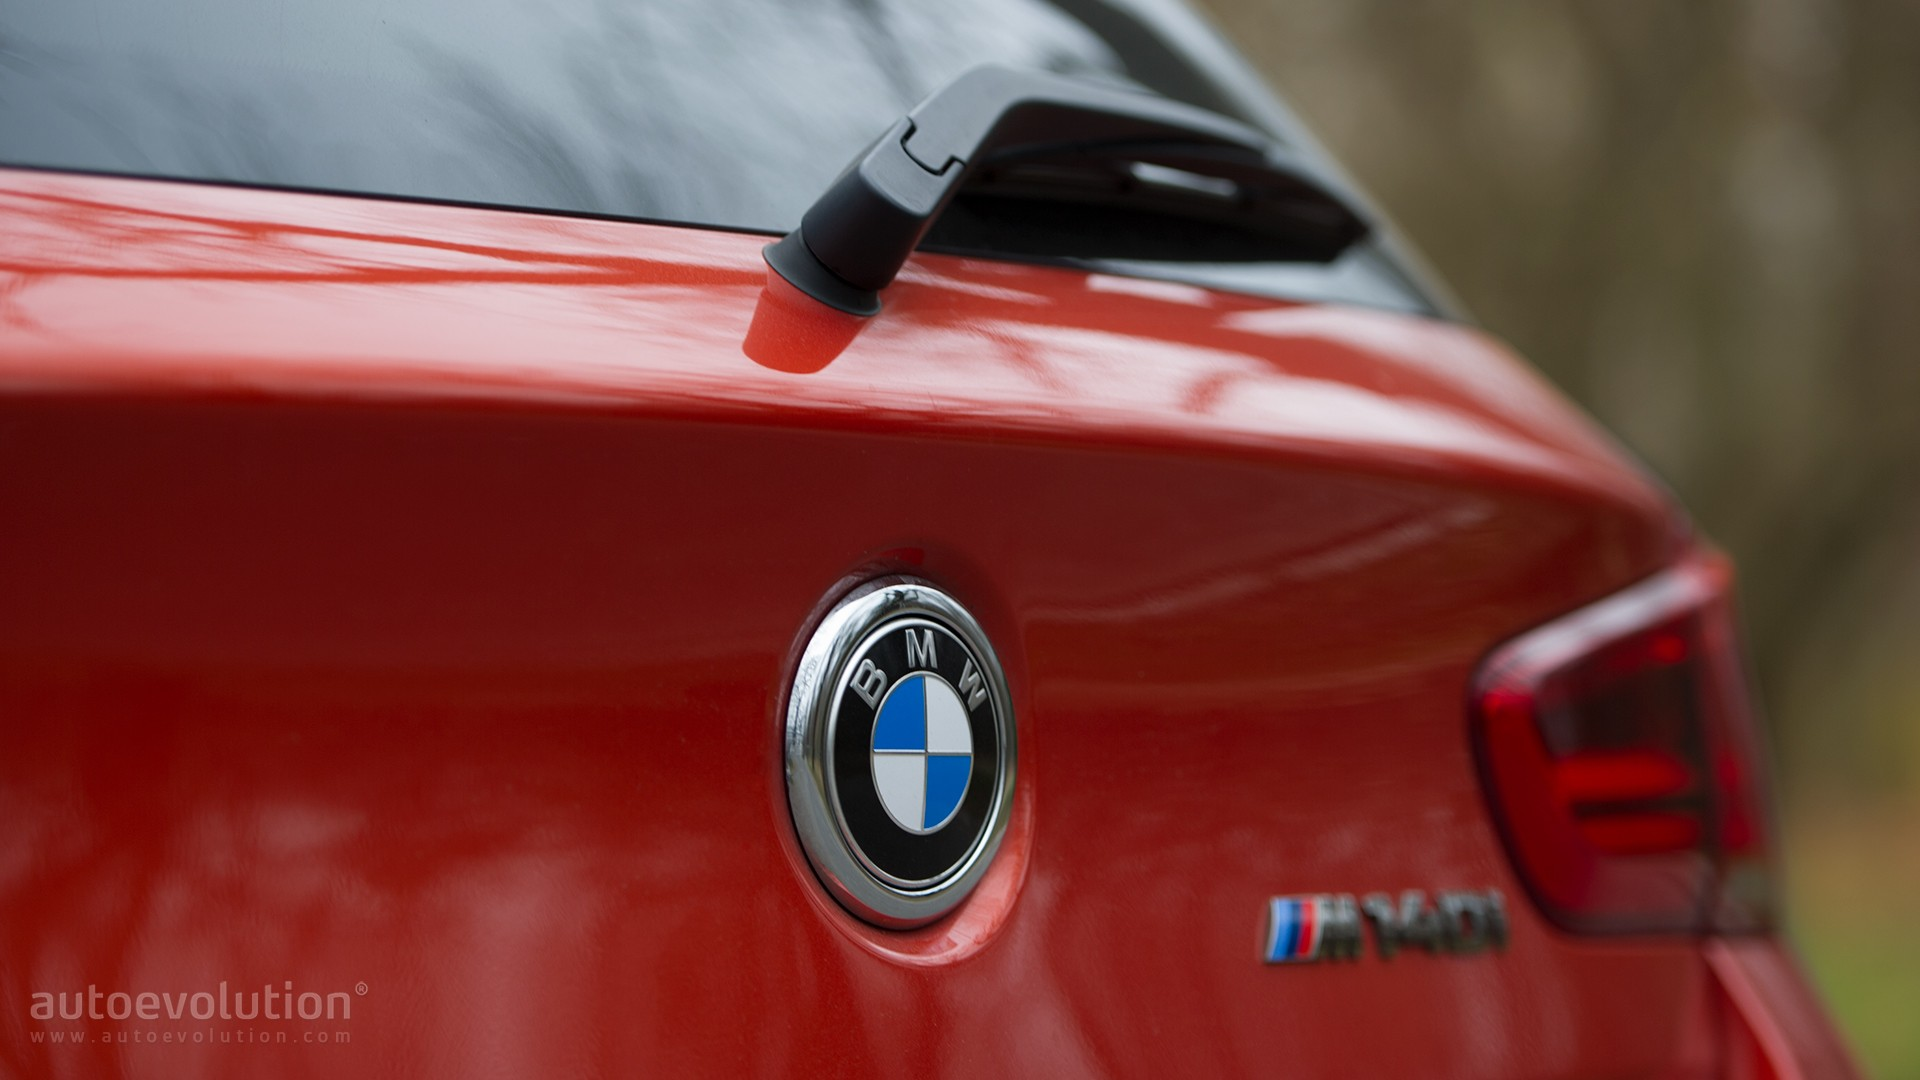 BMW 1 Series to Return to the US in 2017 with Front Wheel Drive